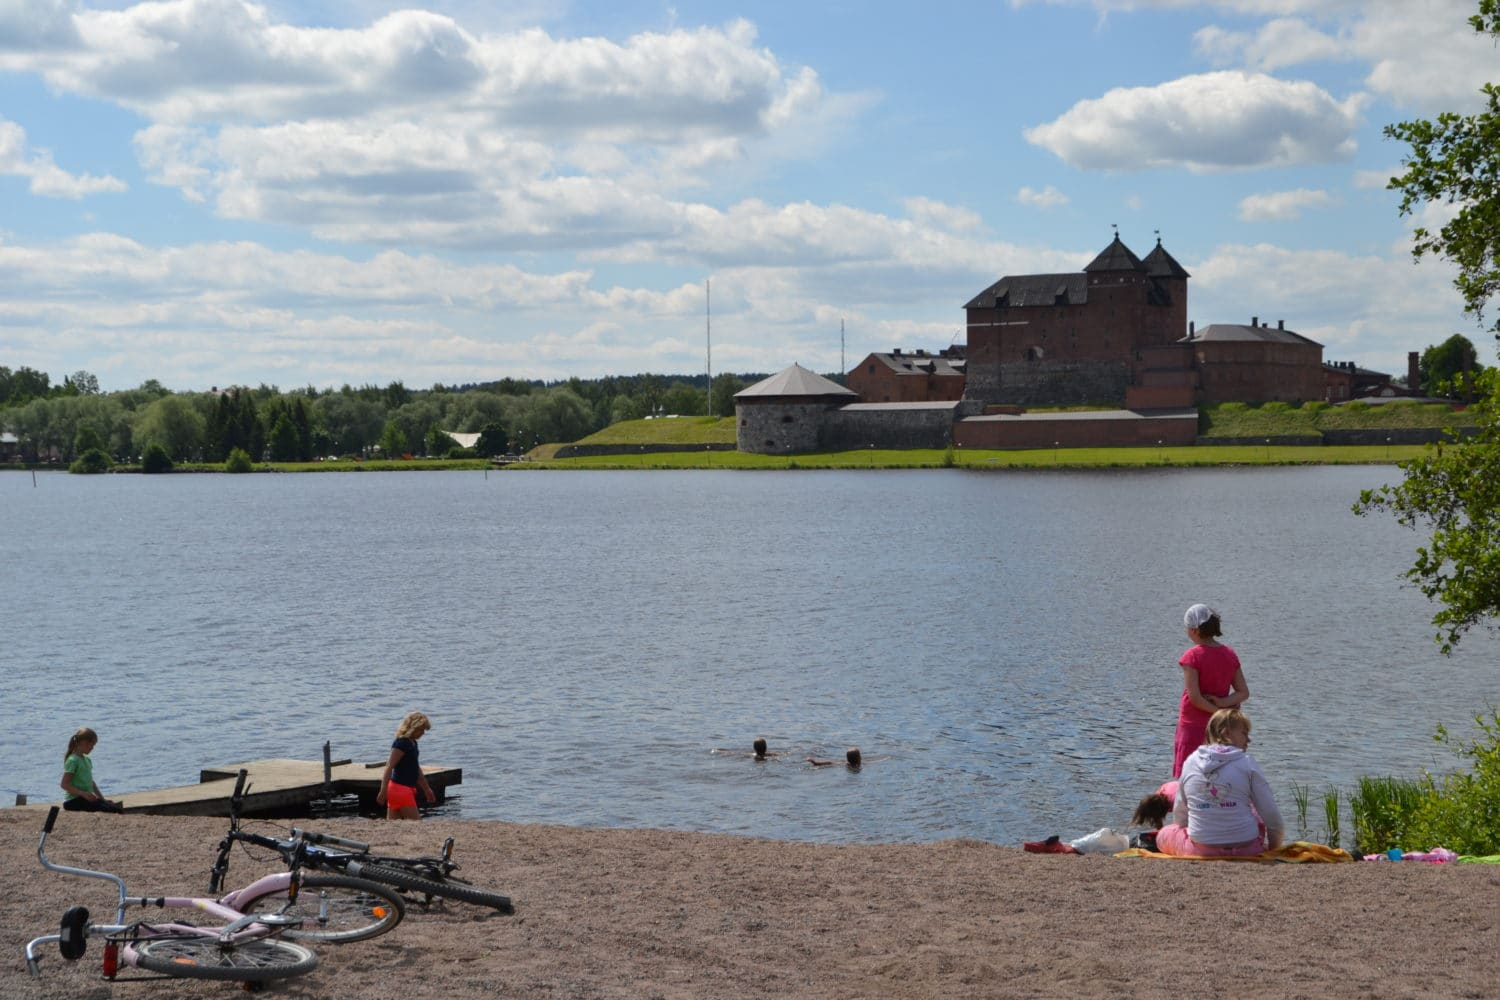 picture of beach with Häme castle in the background